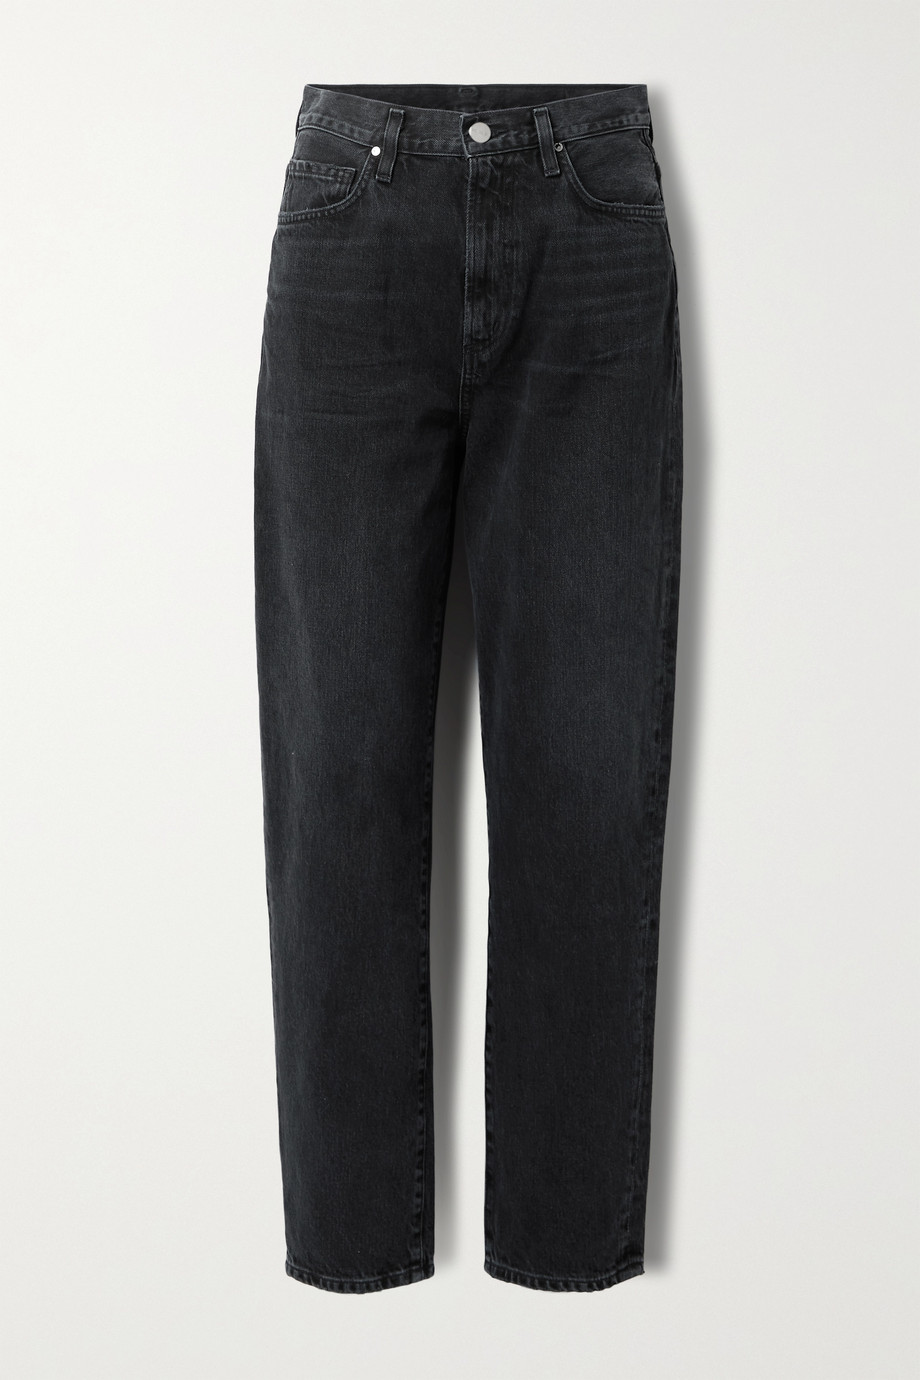 GOLDSIGN + NET SUSTAIN The Peg high-rise straight-leg jeans